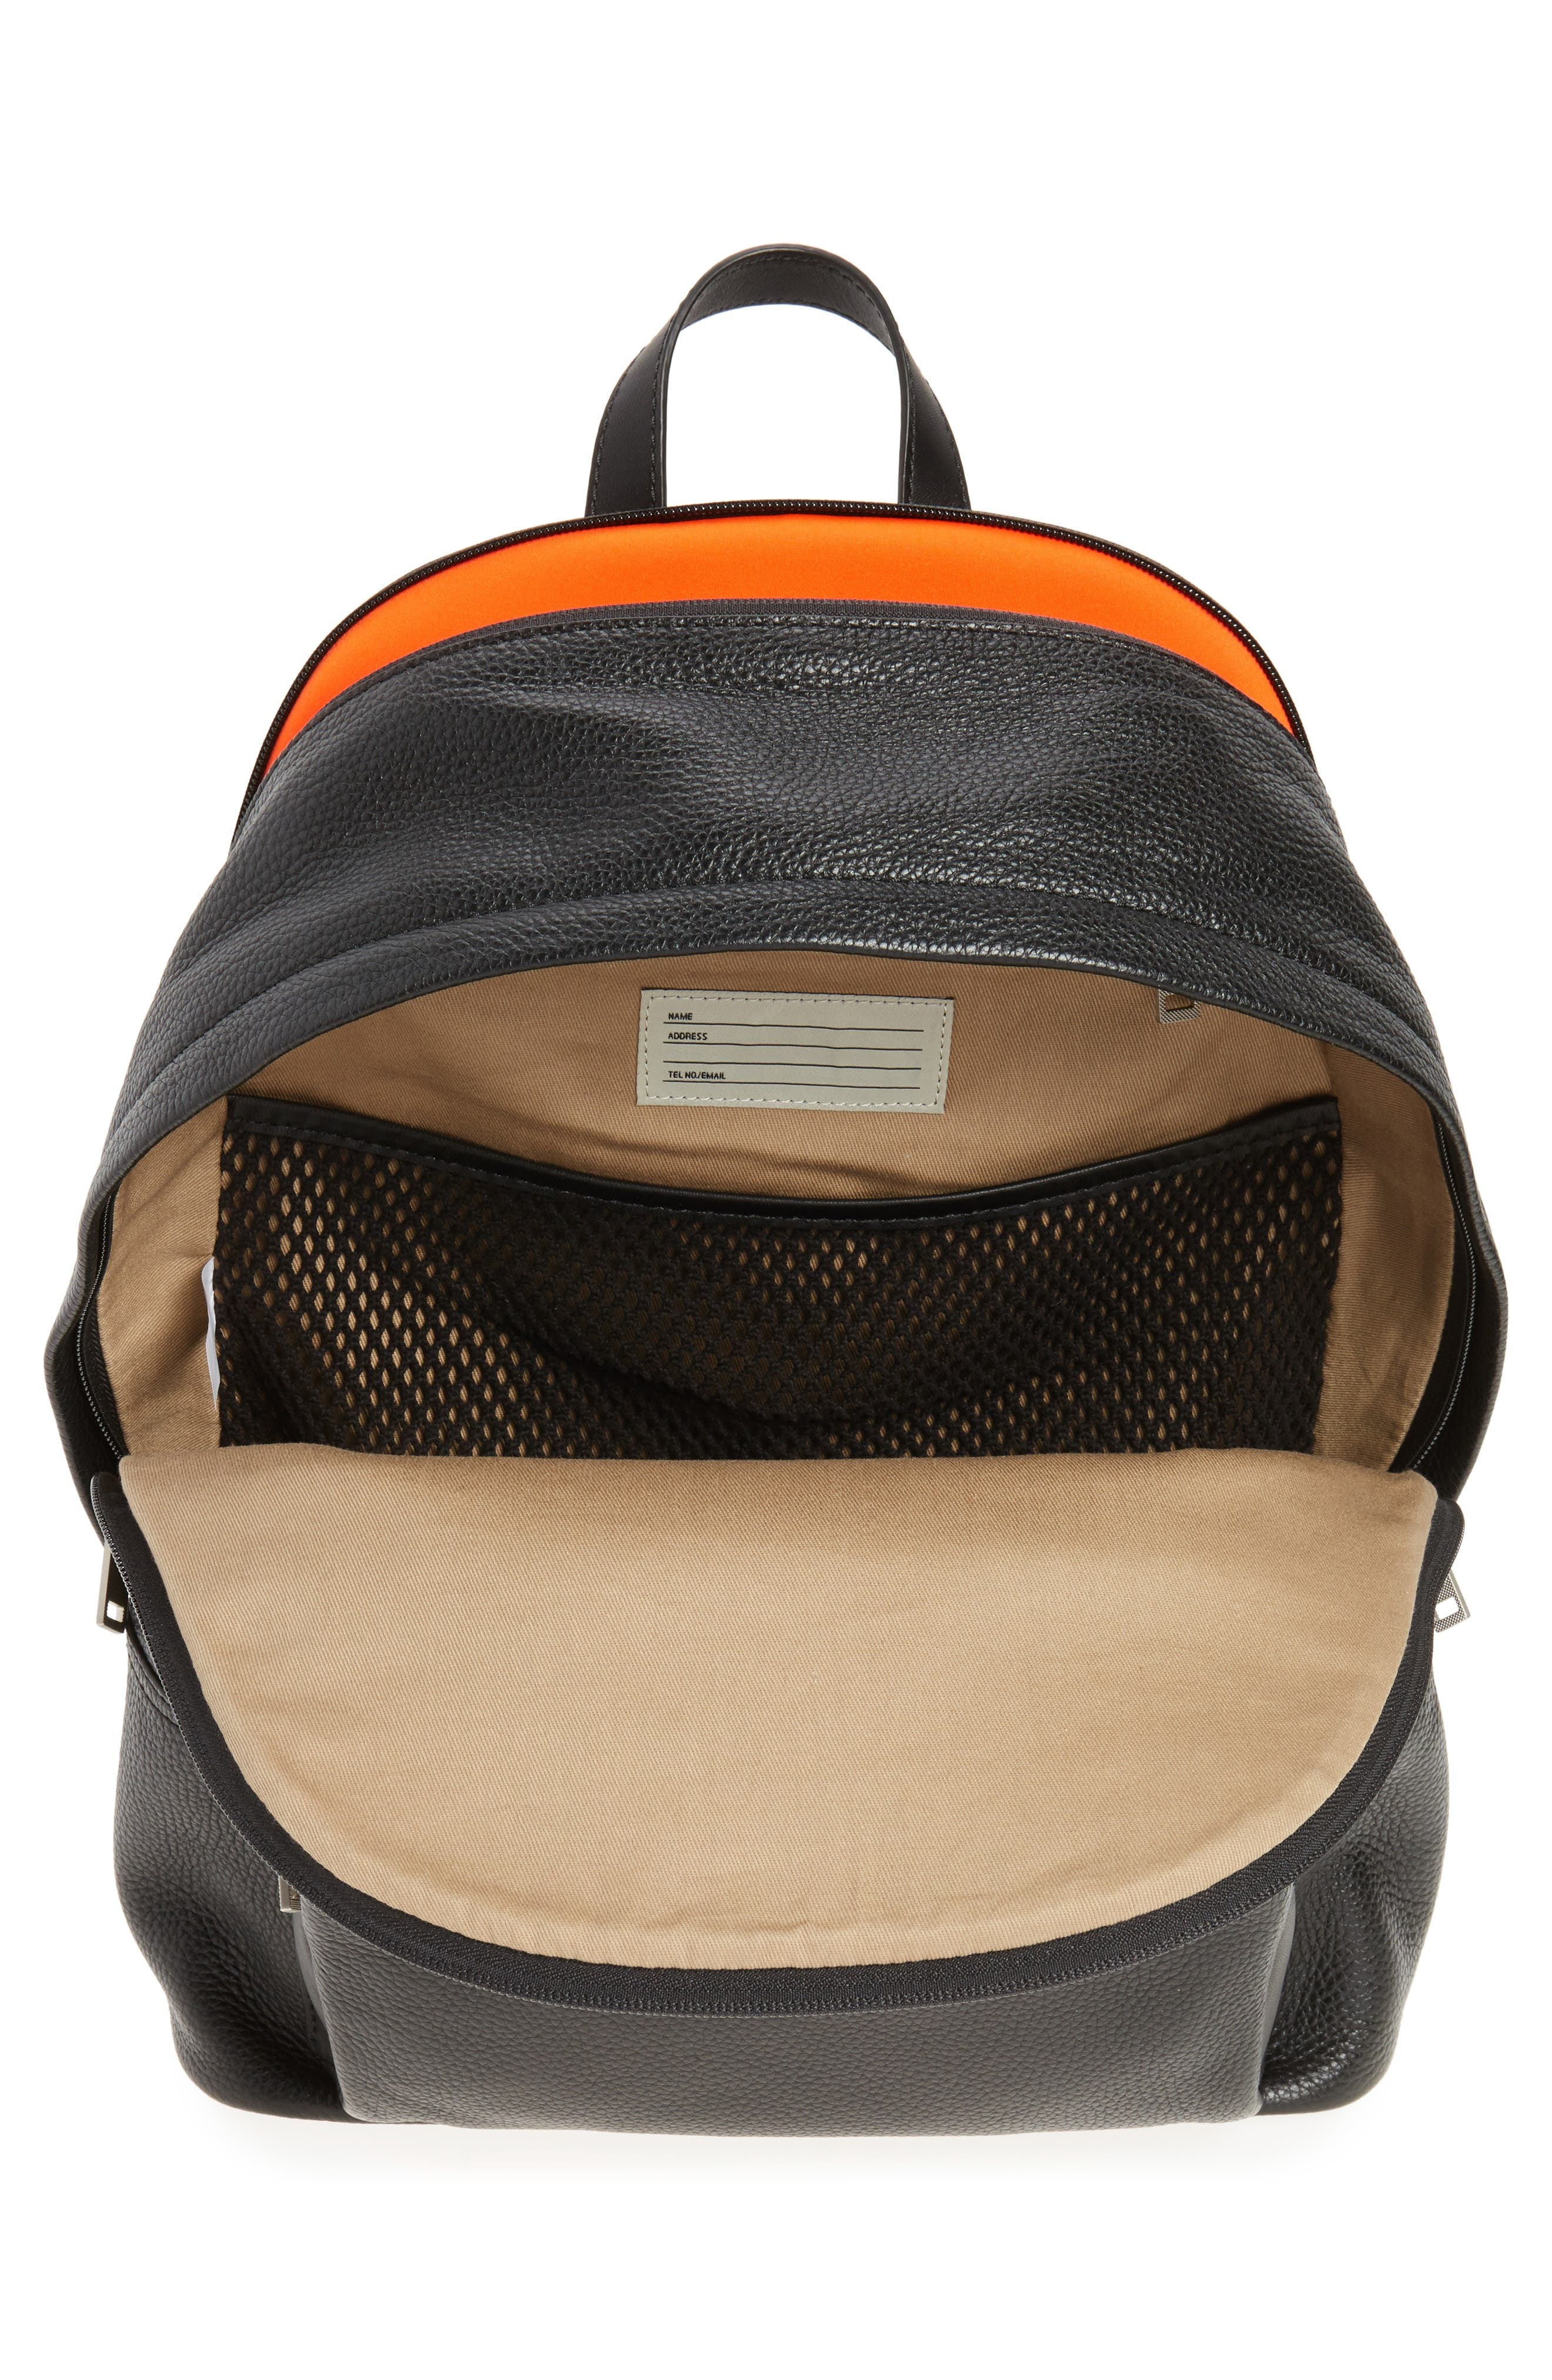 Pebbled Leather Backpack,                             Alternate thumbnail 4, color,                             001